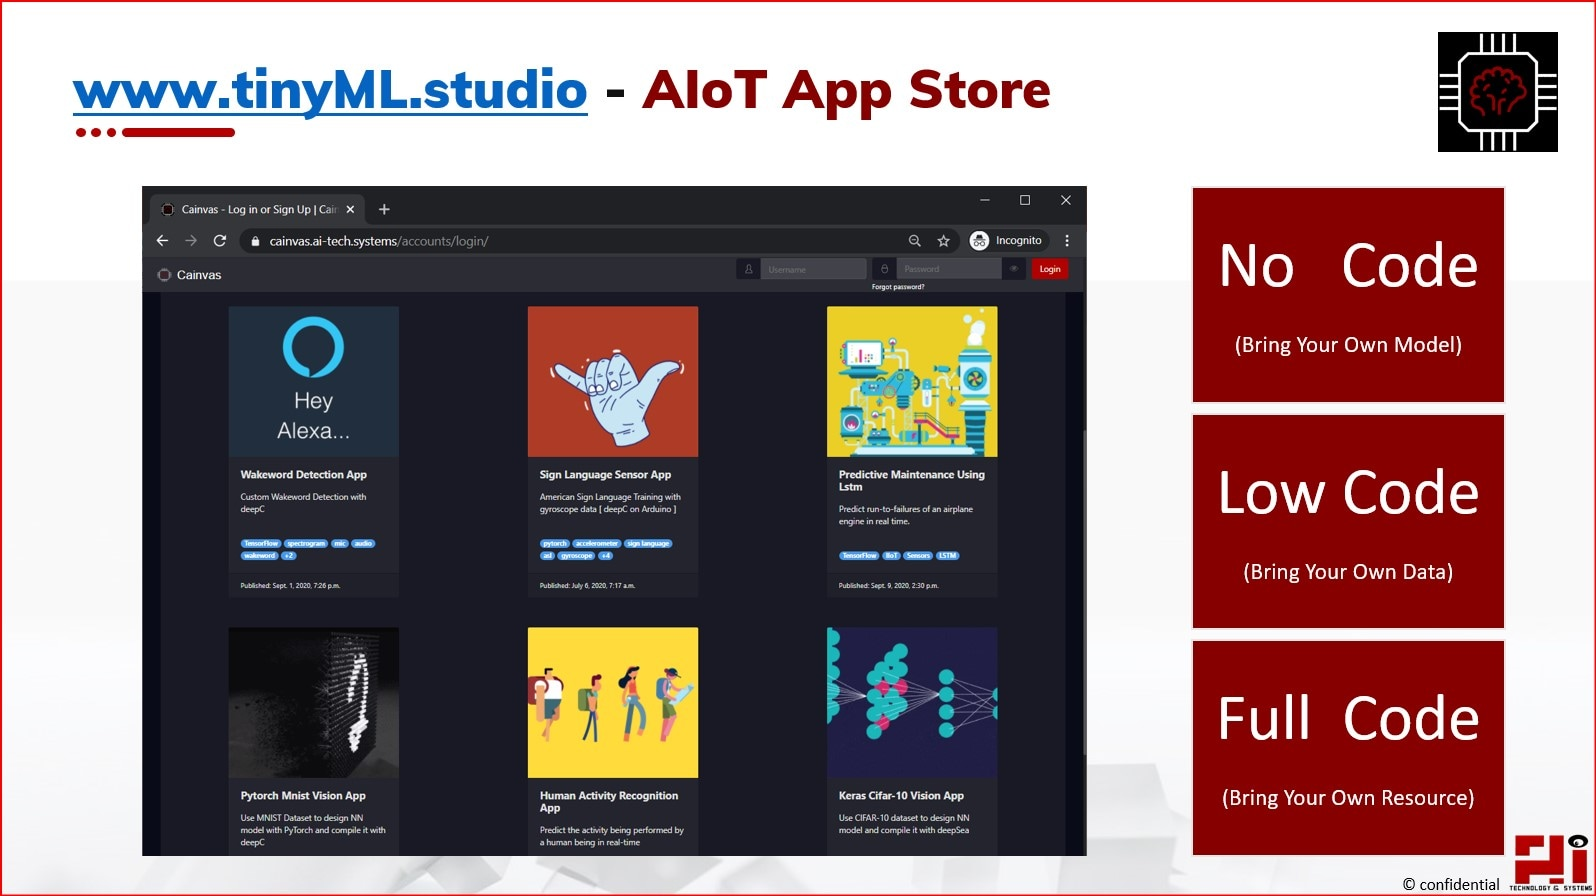 World's largest AIoT app store